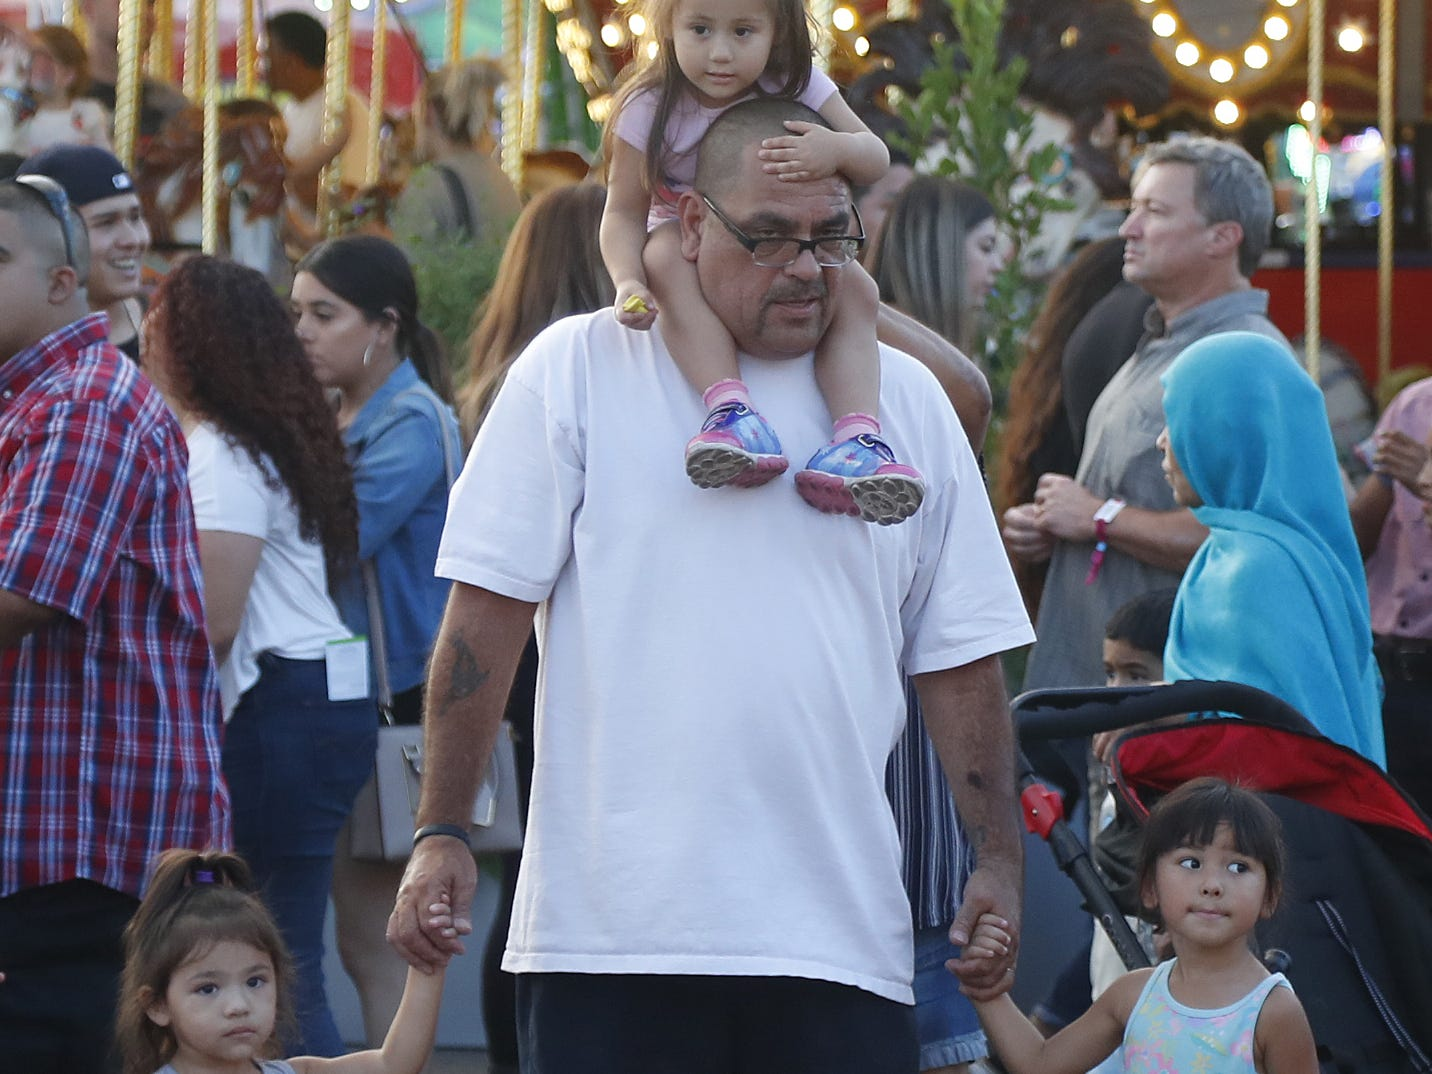 Ernie Garibay walks with his three granddaughters, Cali Granillo (on his head), Raelyn Granillo (L) and Rosie Granillo at the Arizona State Fair in Phoenix, Ariz. on October 21, 2018.